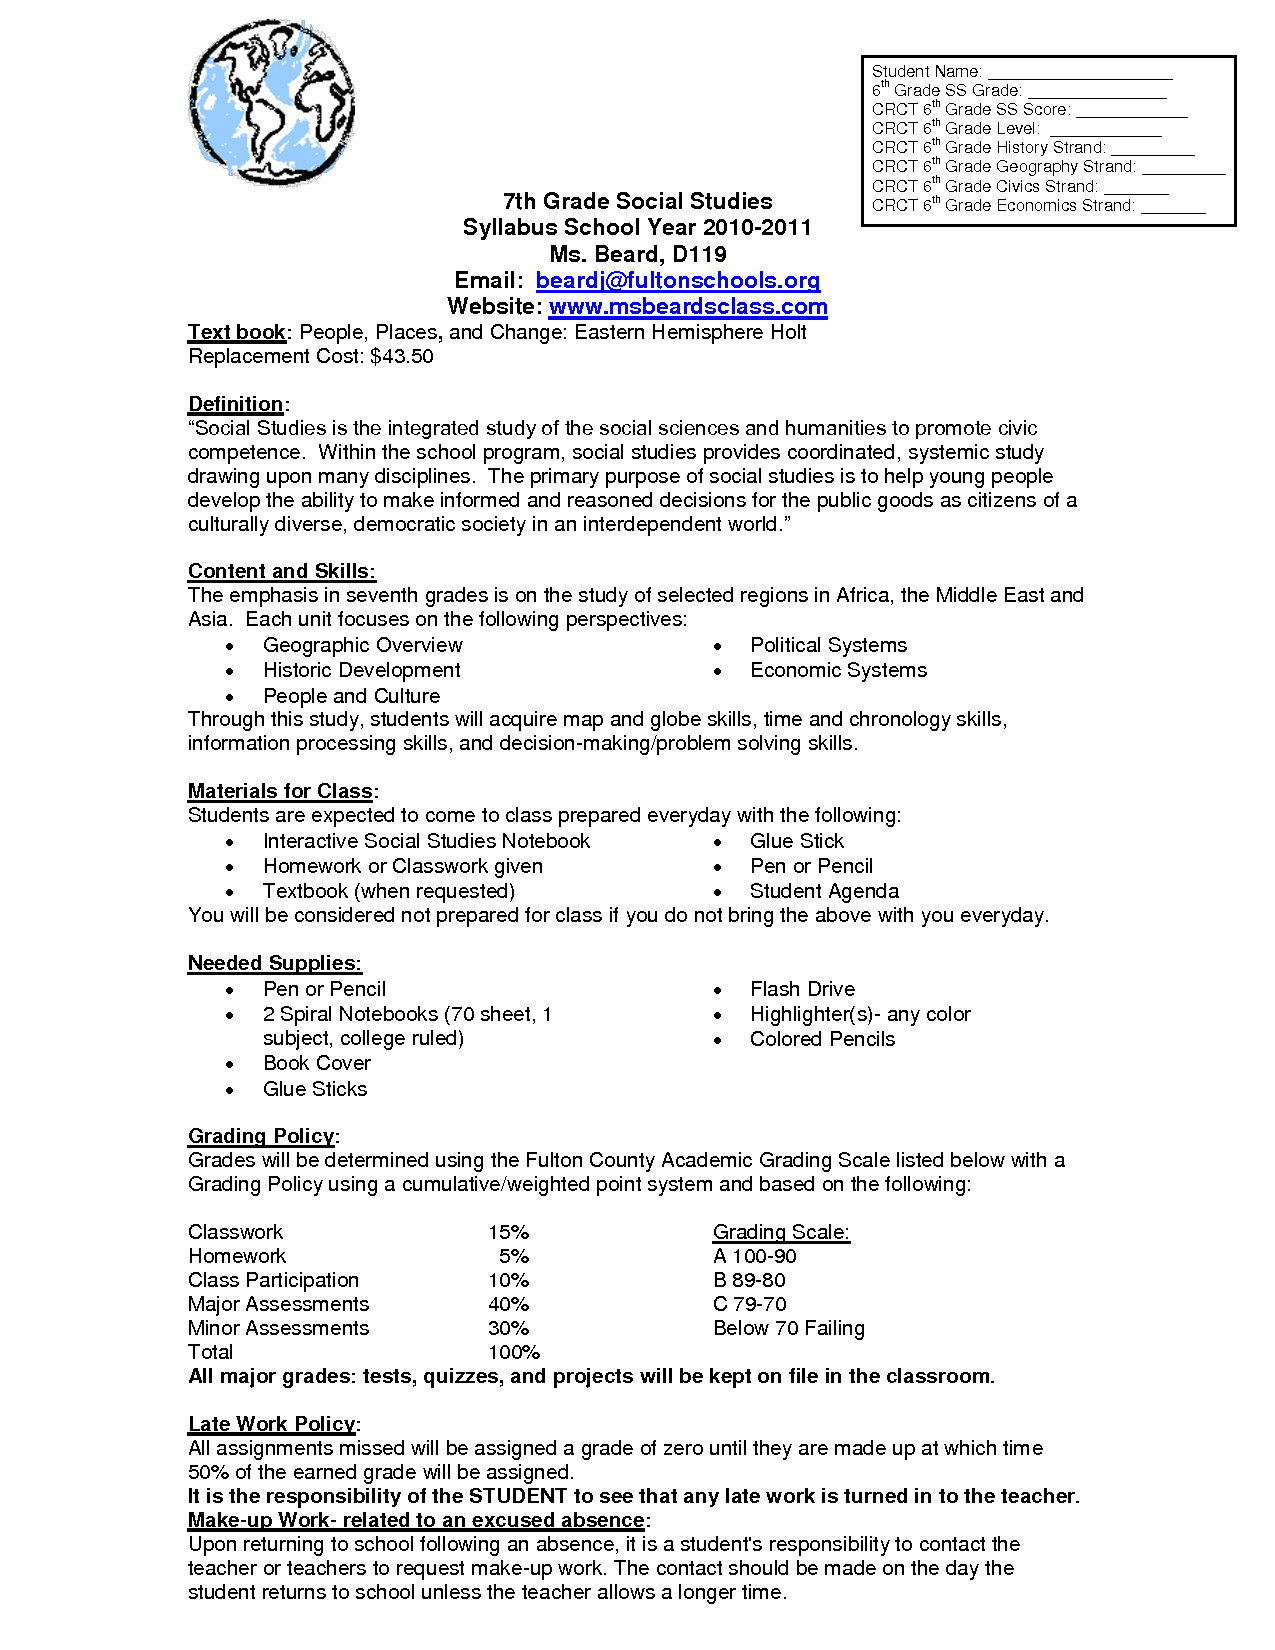 7th Grade World History Worksheets Best social Stu S for 7th Graders Worksheet